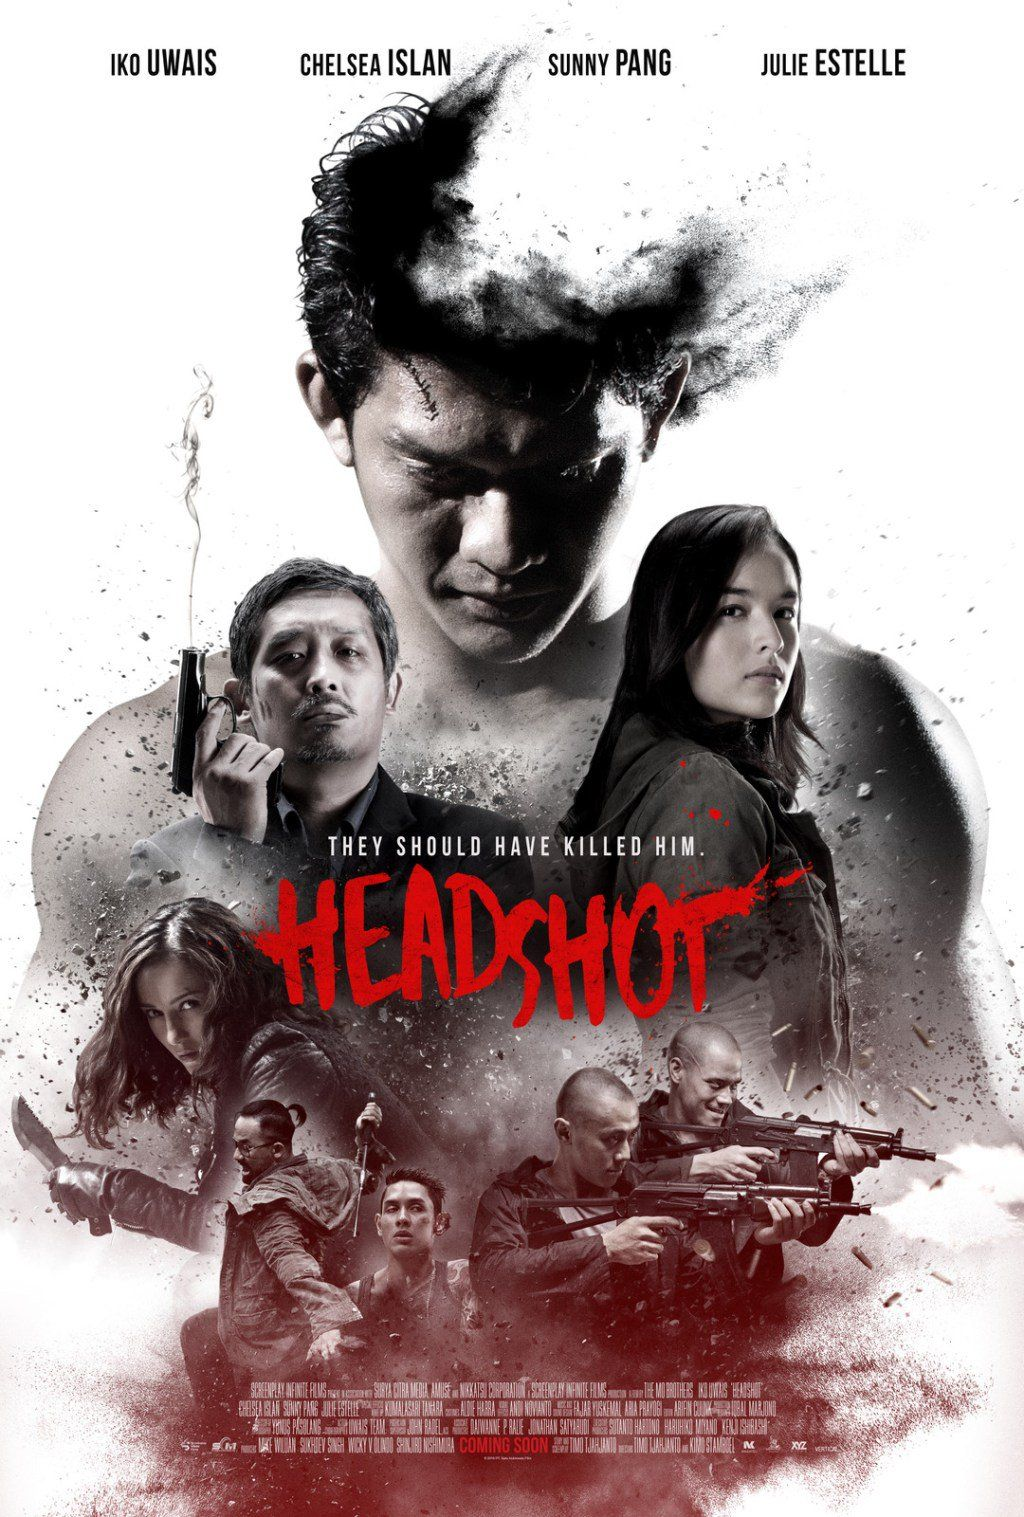 Review: Headshot 2017 dir. Timo Tjahjanto & KimoStamboel agcrump.wordpress.com/2017/03/02/rev